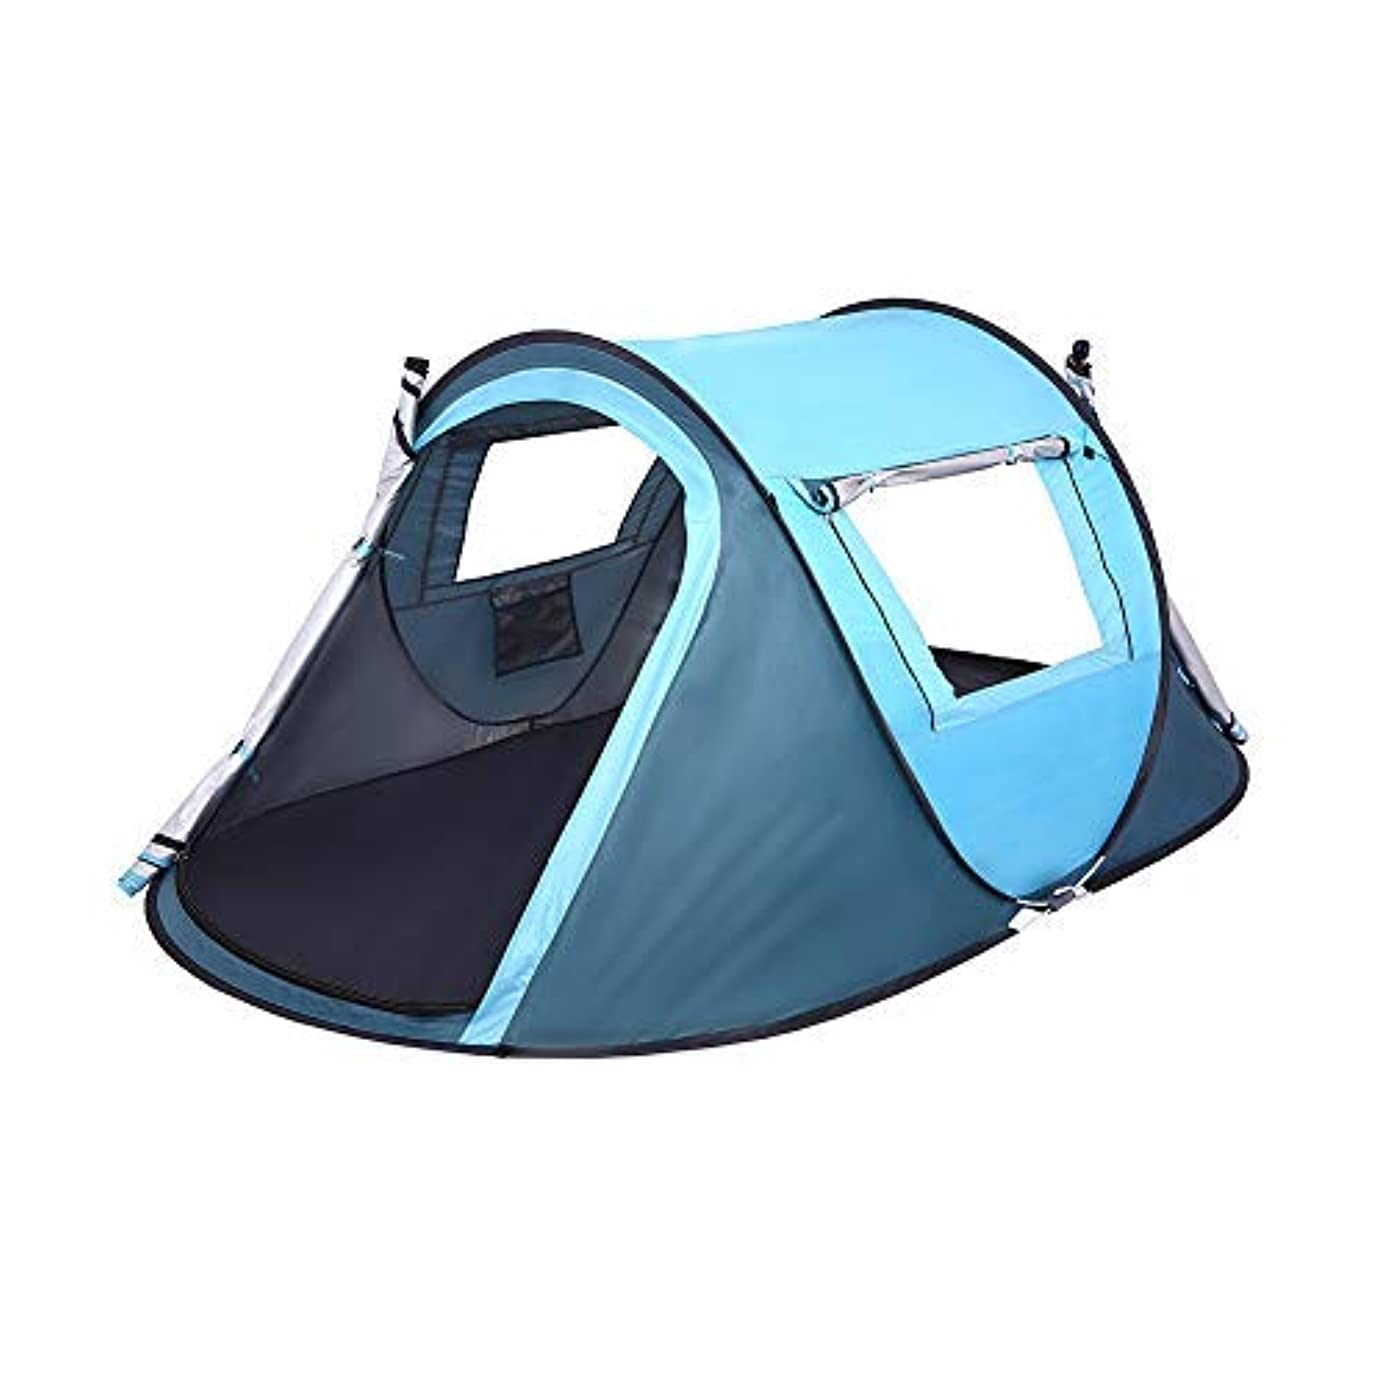 手紙を書く純粋に閉じるLw Boat Tent(テント) Instant 2 Person Automatic Lightweight Waterproof Breathable Sun Shelter Backpacking Tent(テント)s for 4 Season Outdoor Camping Hiking Traveling Or Beach Fishing [並行輸入品]